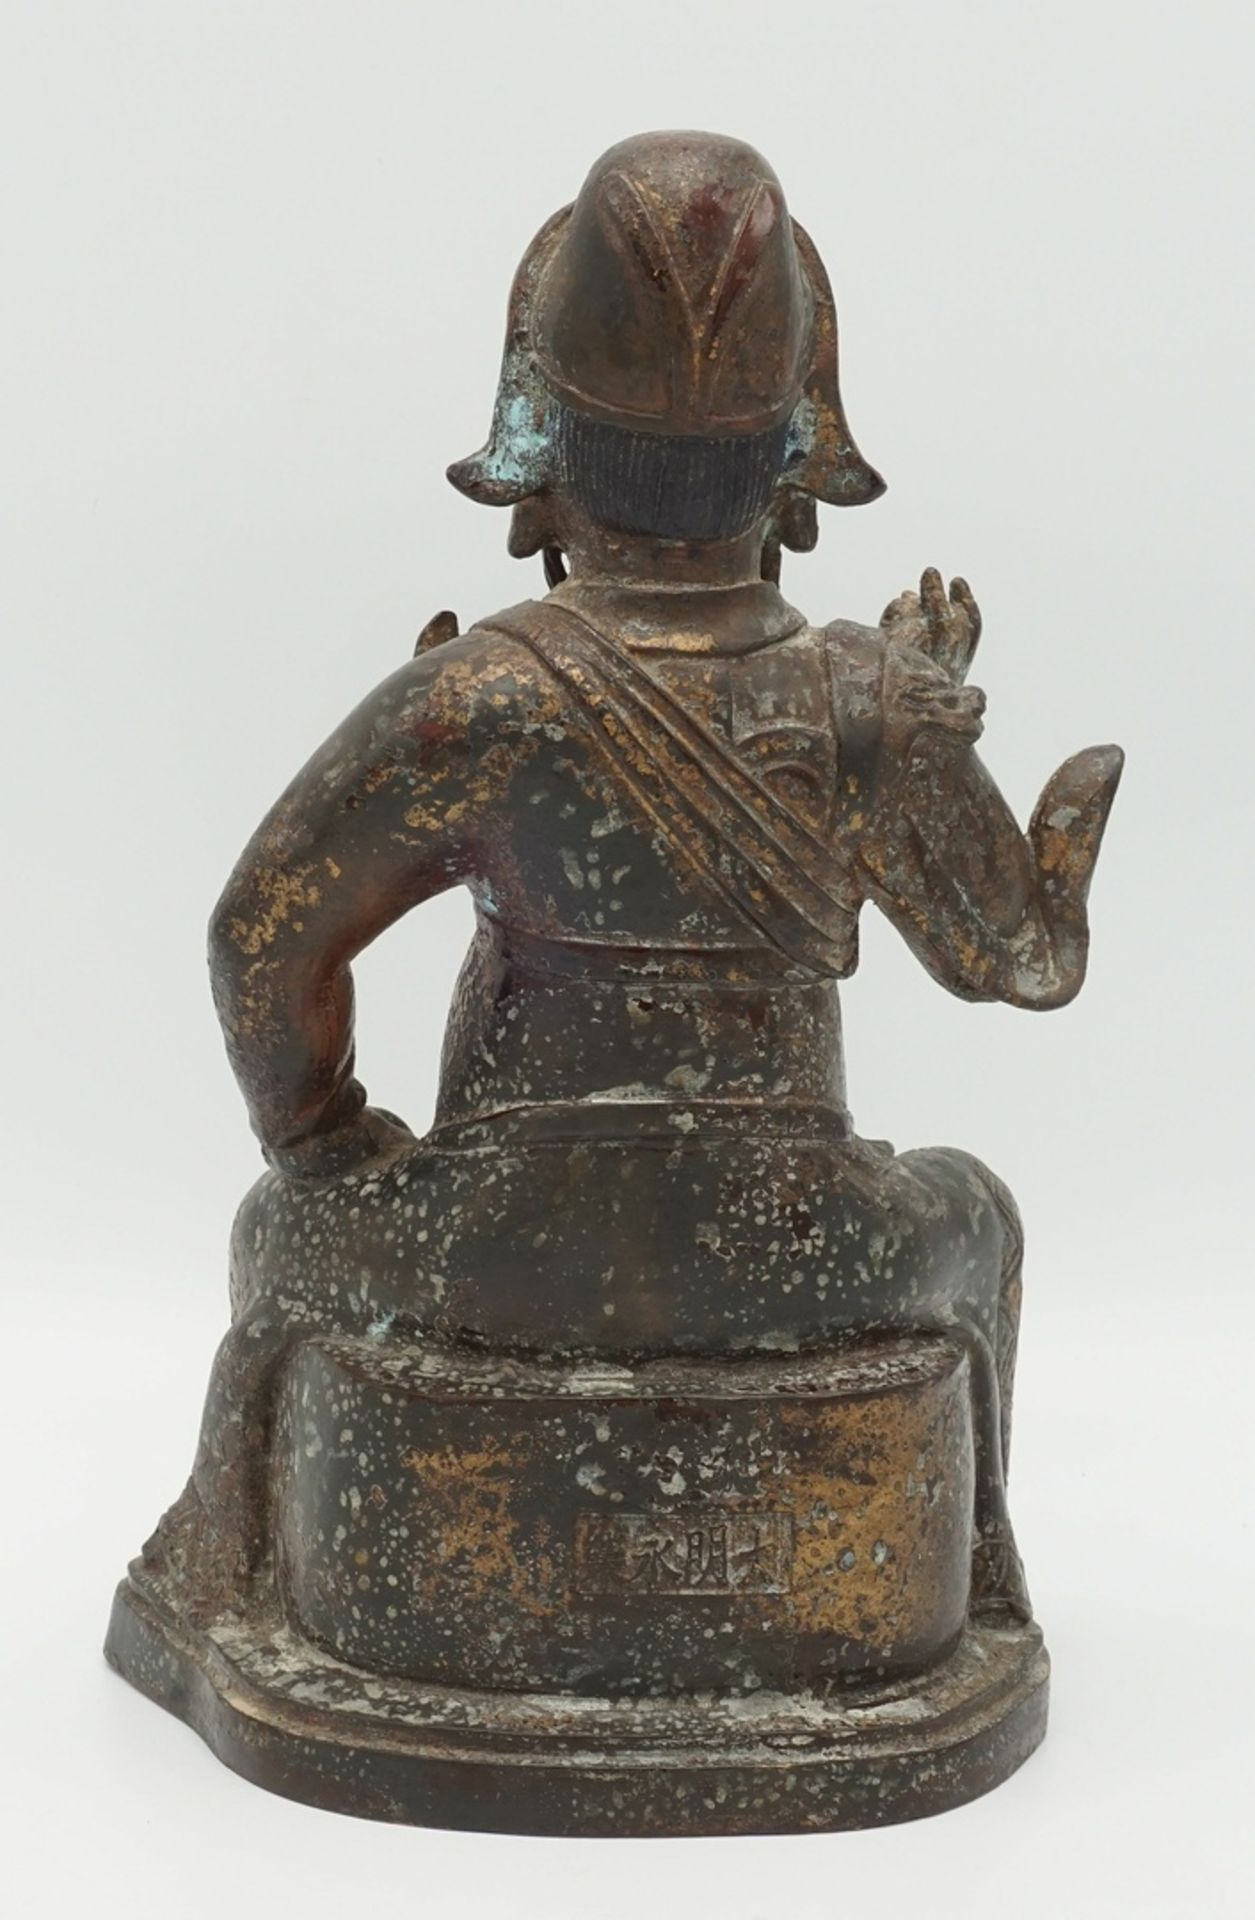 Guan Yu Bronzefigur, China, 18./19. Jh. - Image 2 of 4